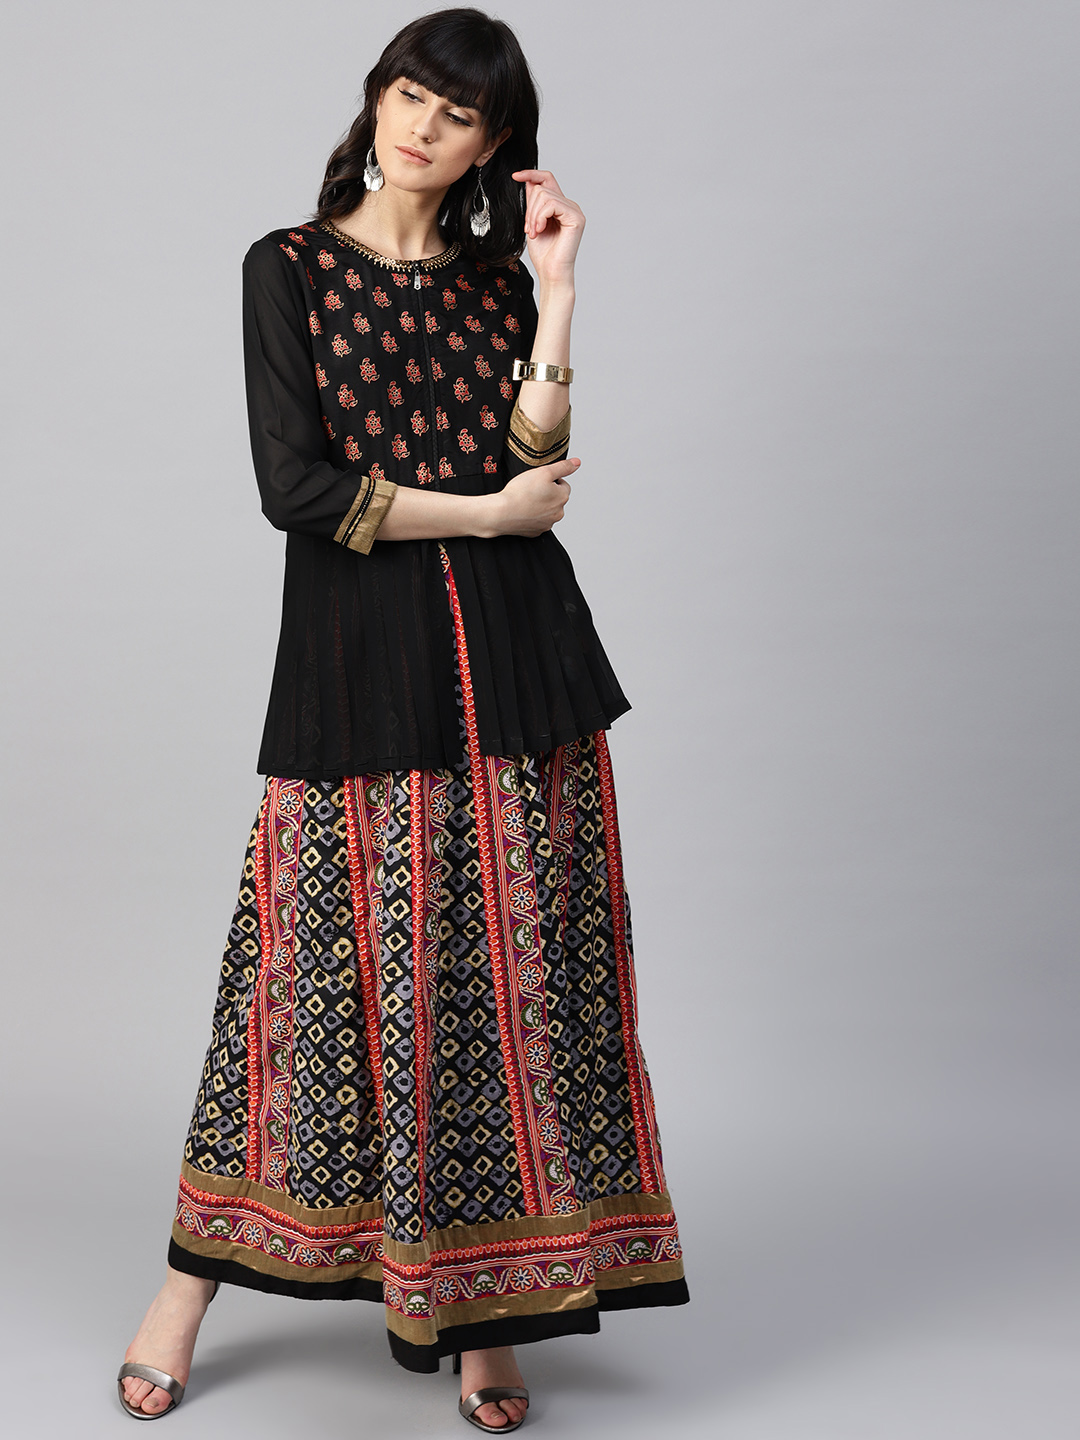 15-types-of-tops-Women-Black-Printed-Empire-Top